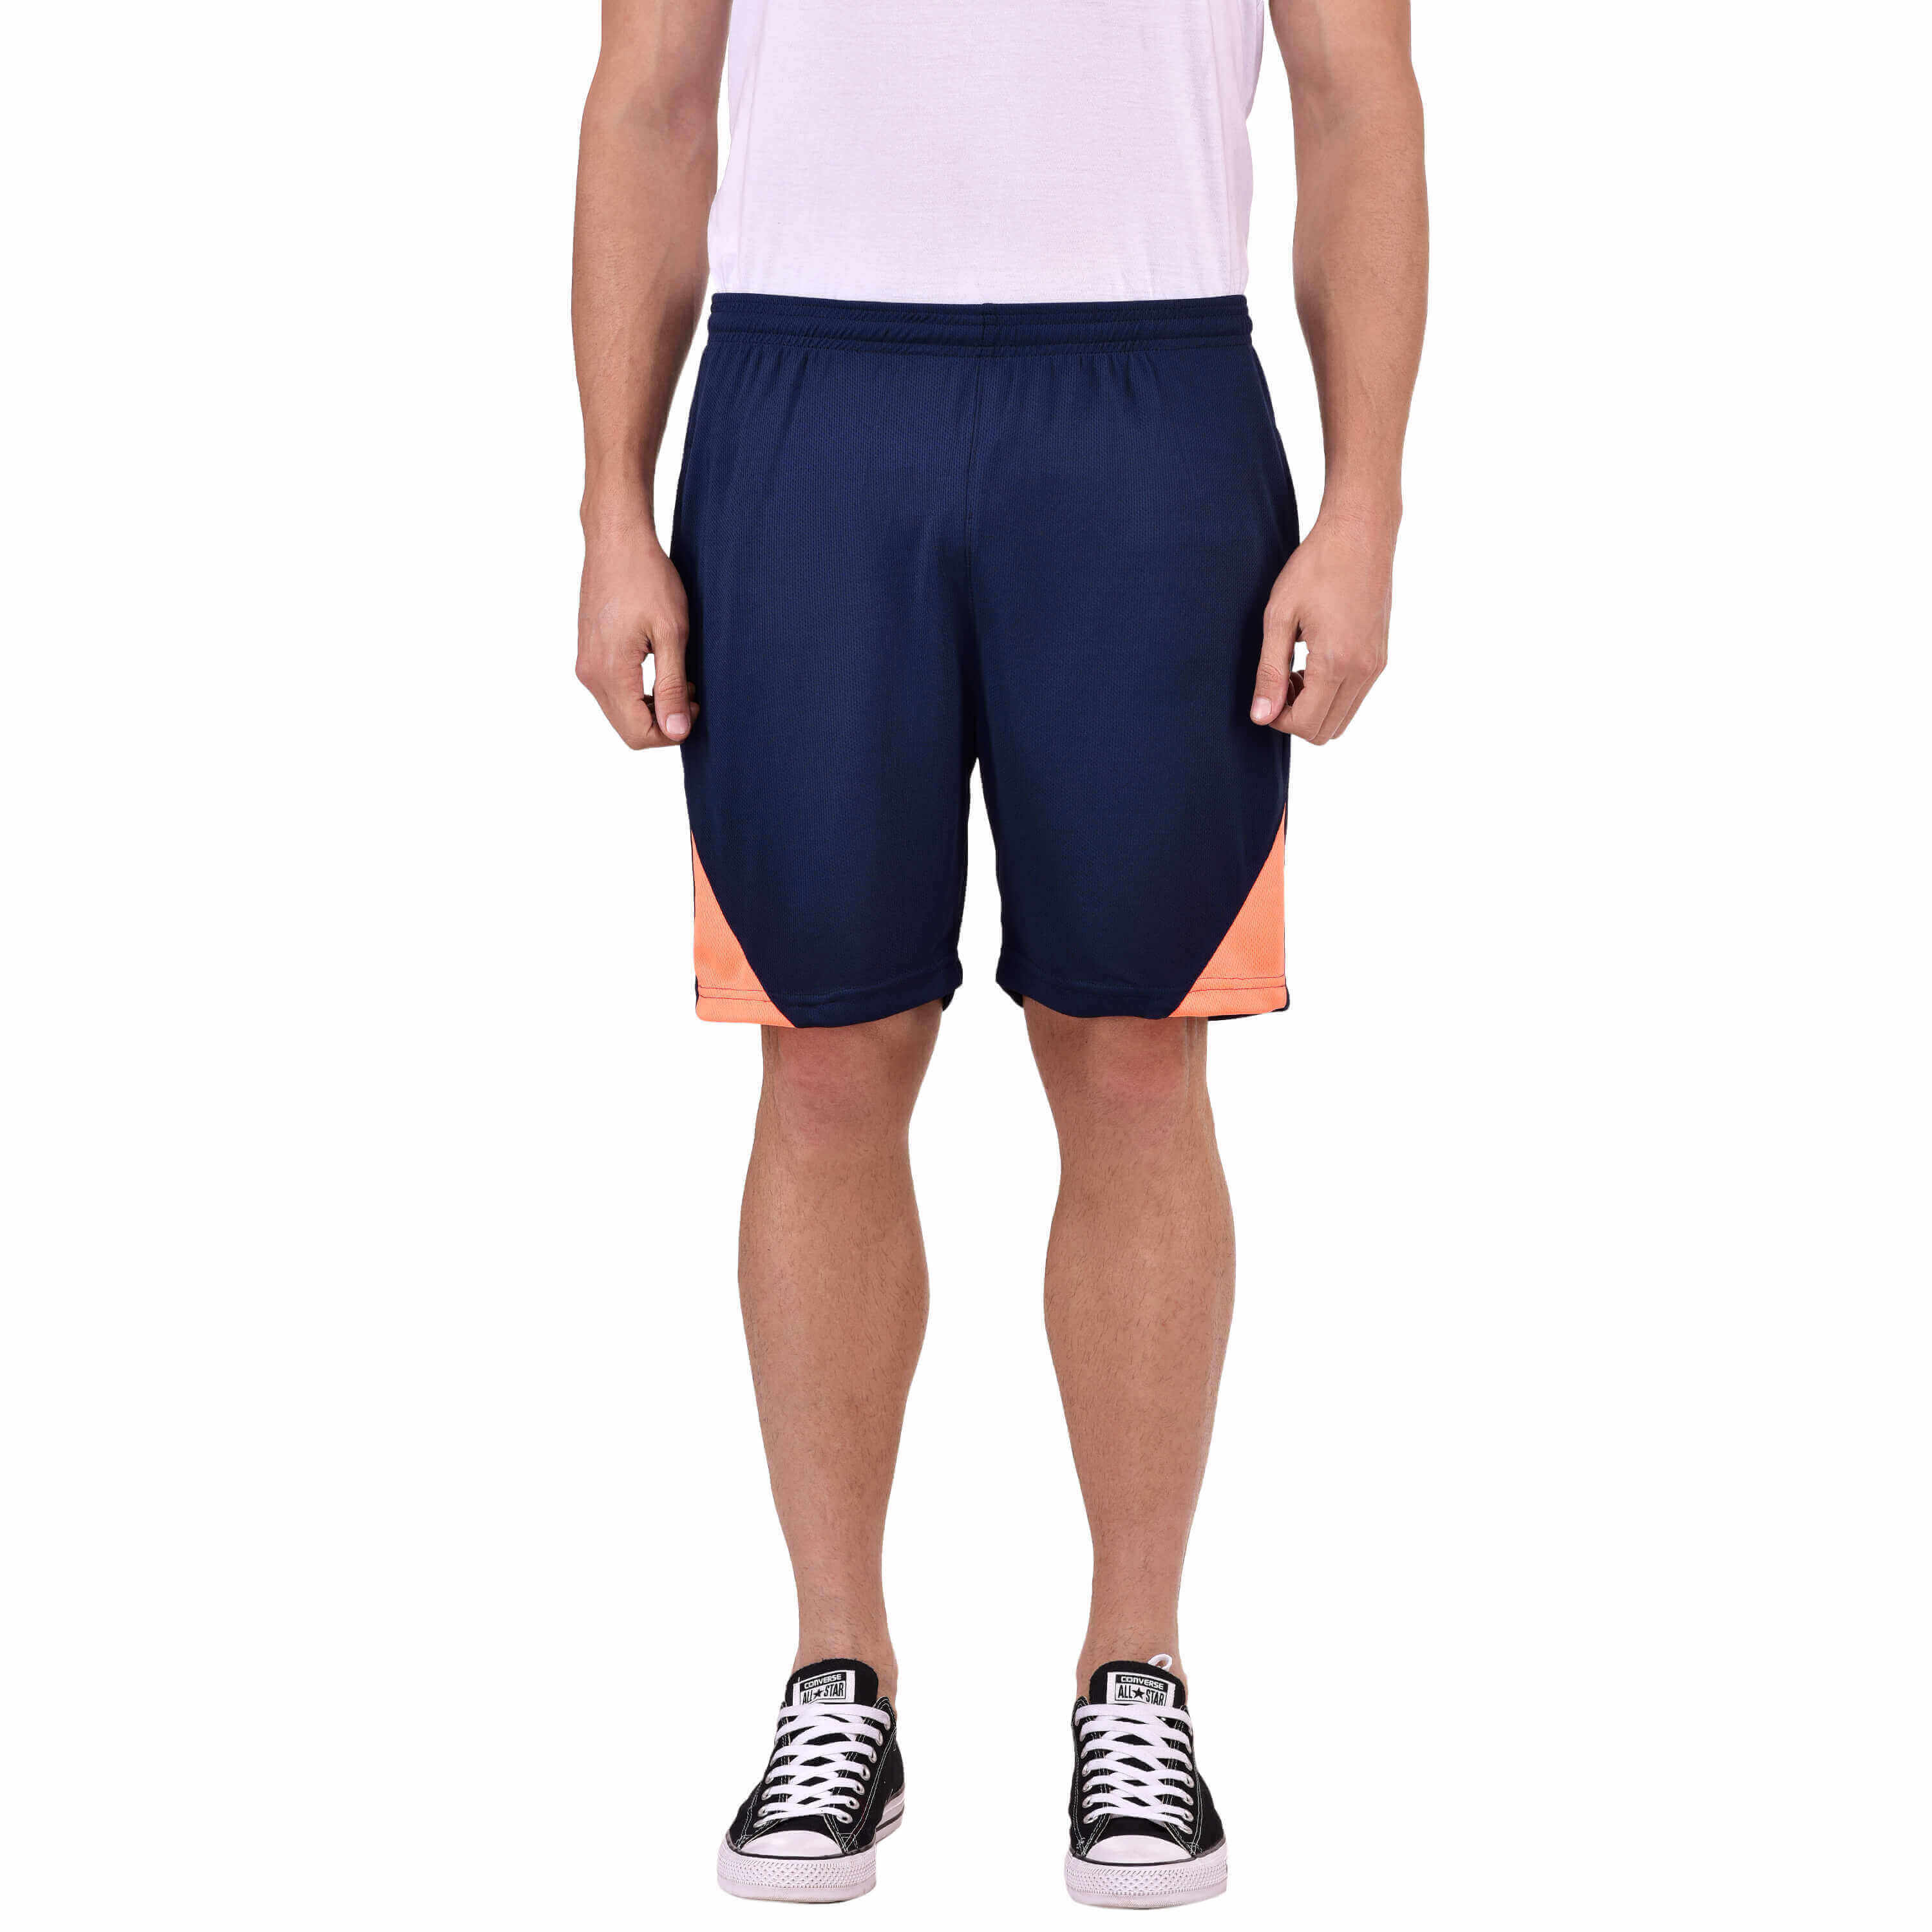 Football Shorts Manufacturers in Jalandhar in Bangladesh